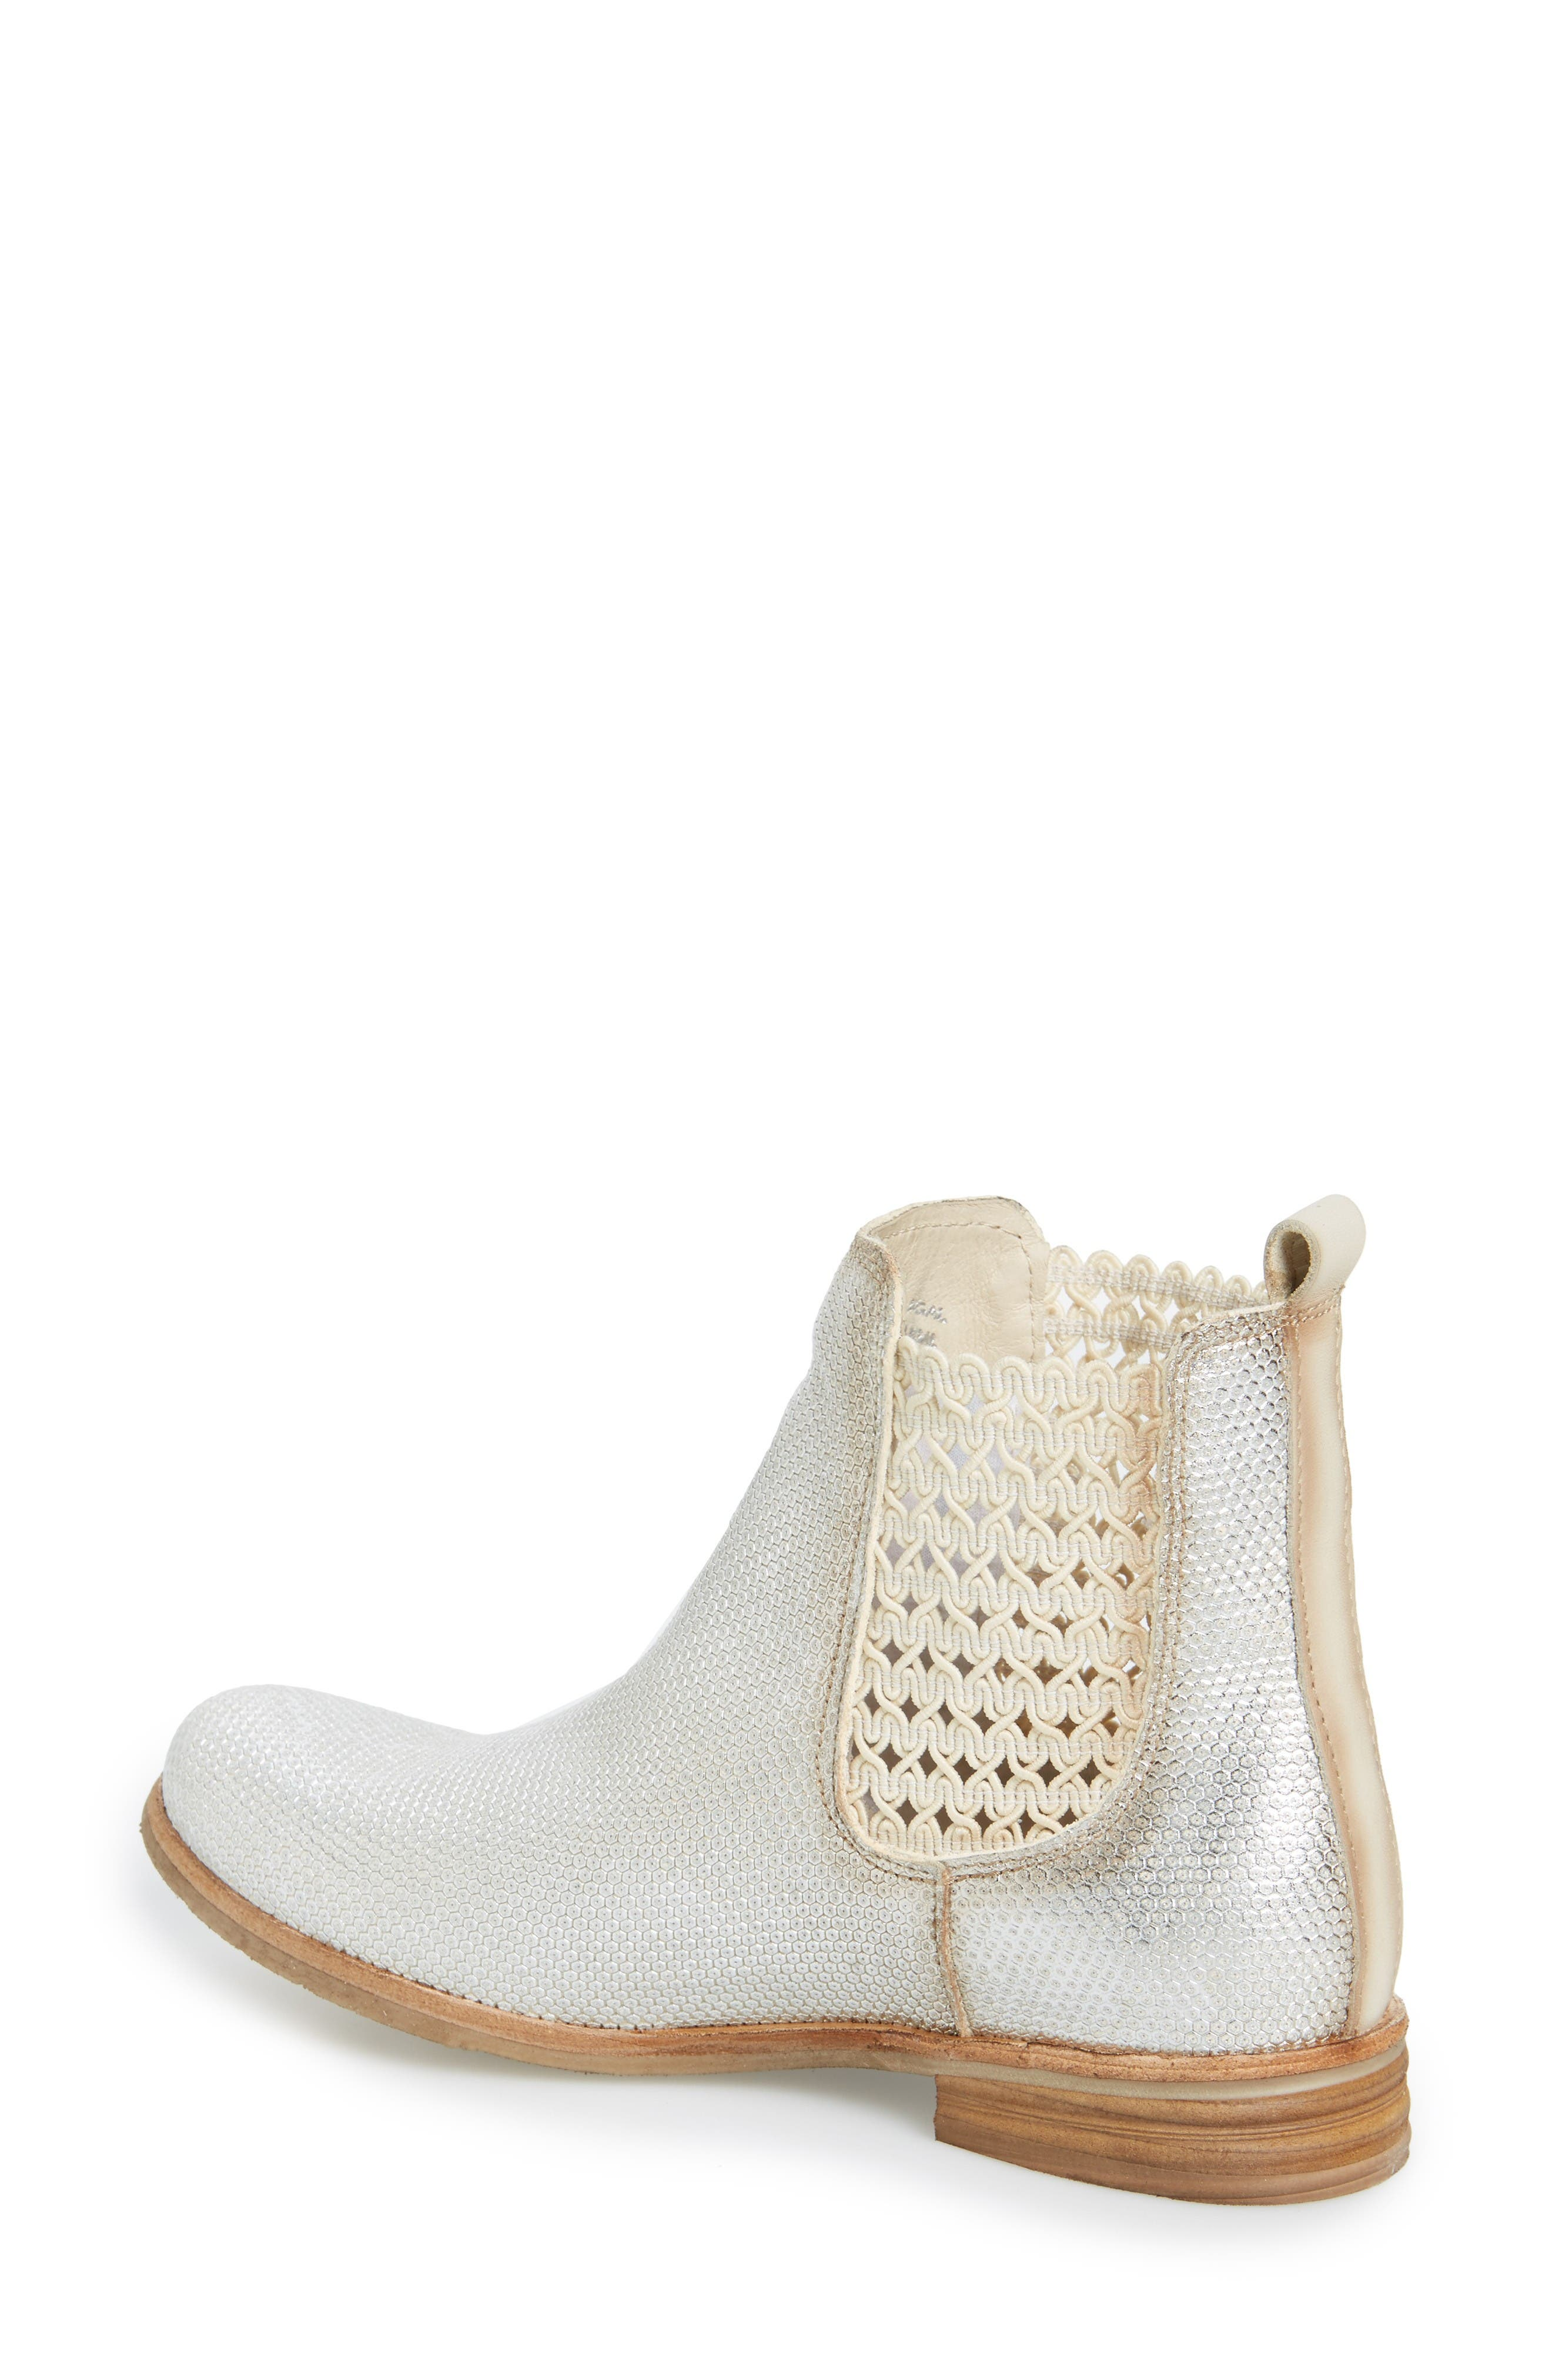 Flicker Boot,                             Alternate thumbnail 2, color,                             Off White/ Silver Leather